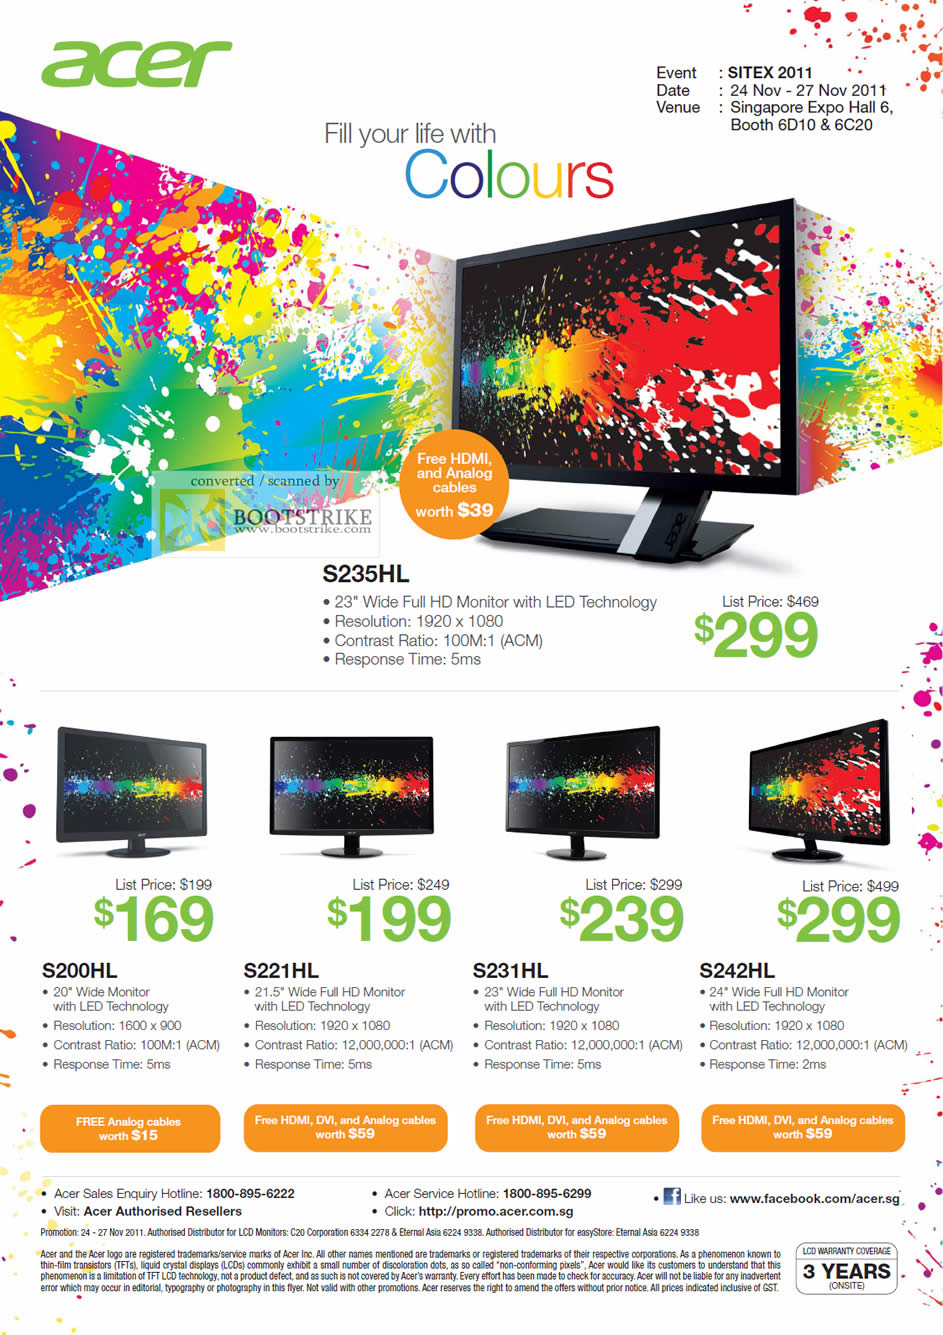 SITEX 2011 price list image brochure of Acer LED Monitors S235HL, S200HL, S221HL, S231HL, S242HL